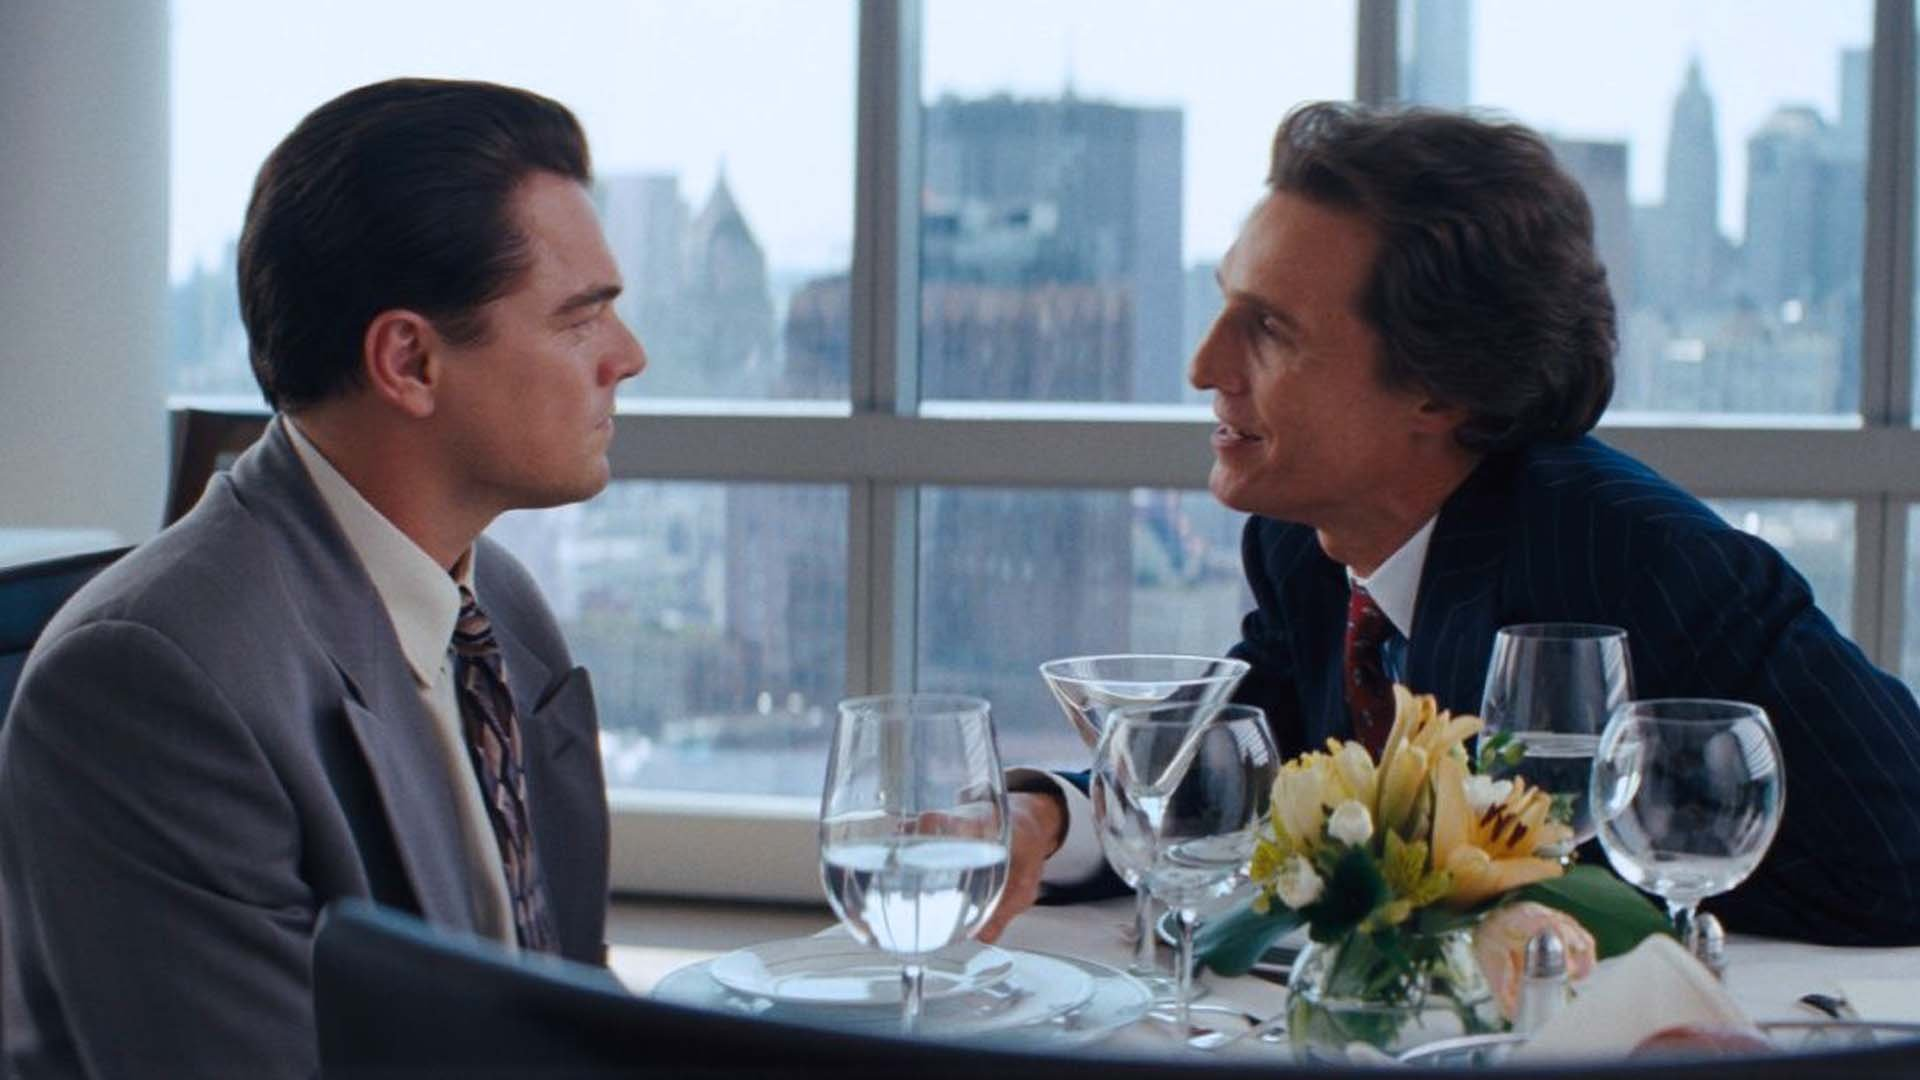 Leonardo DiCaprio e Matthew Mcconaughey in The Wolf of Wall Street